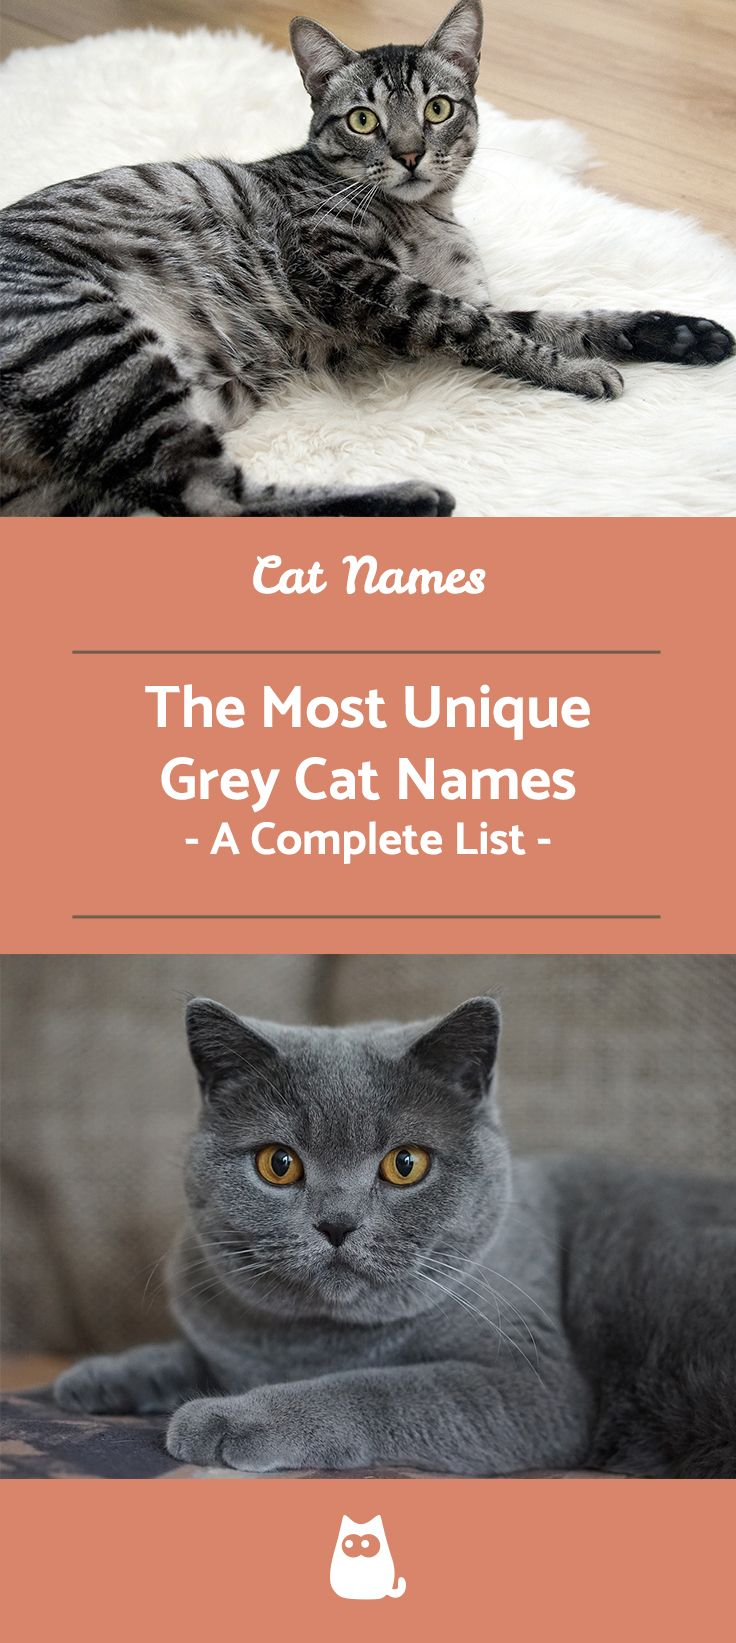 Grey Cat Names For Male And Female Over 40 Grey Cat Names Grey Cat Breeds Cute Cat Names